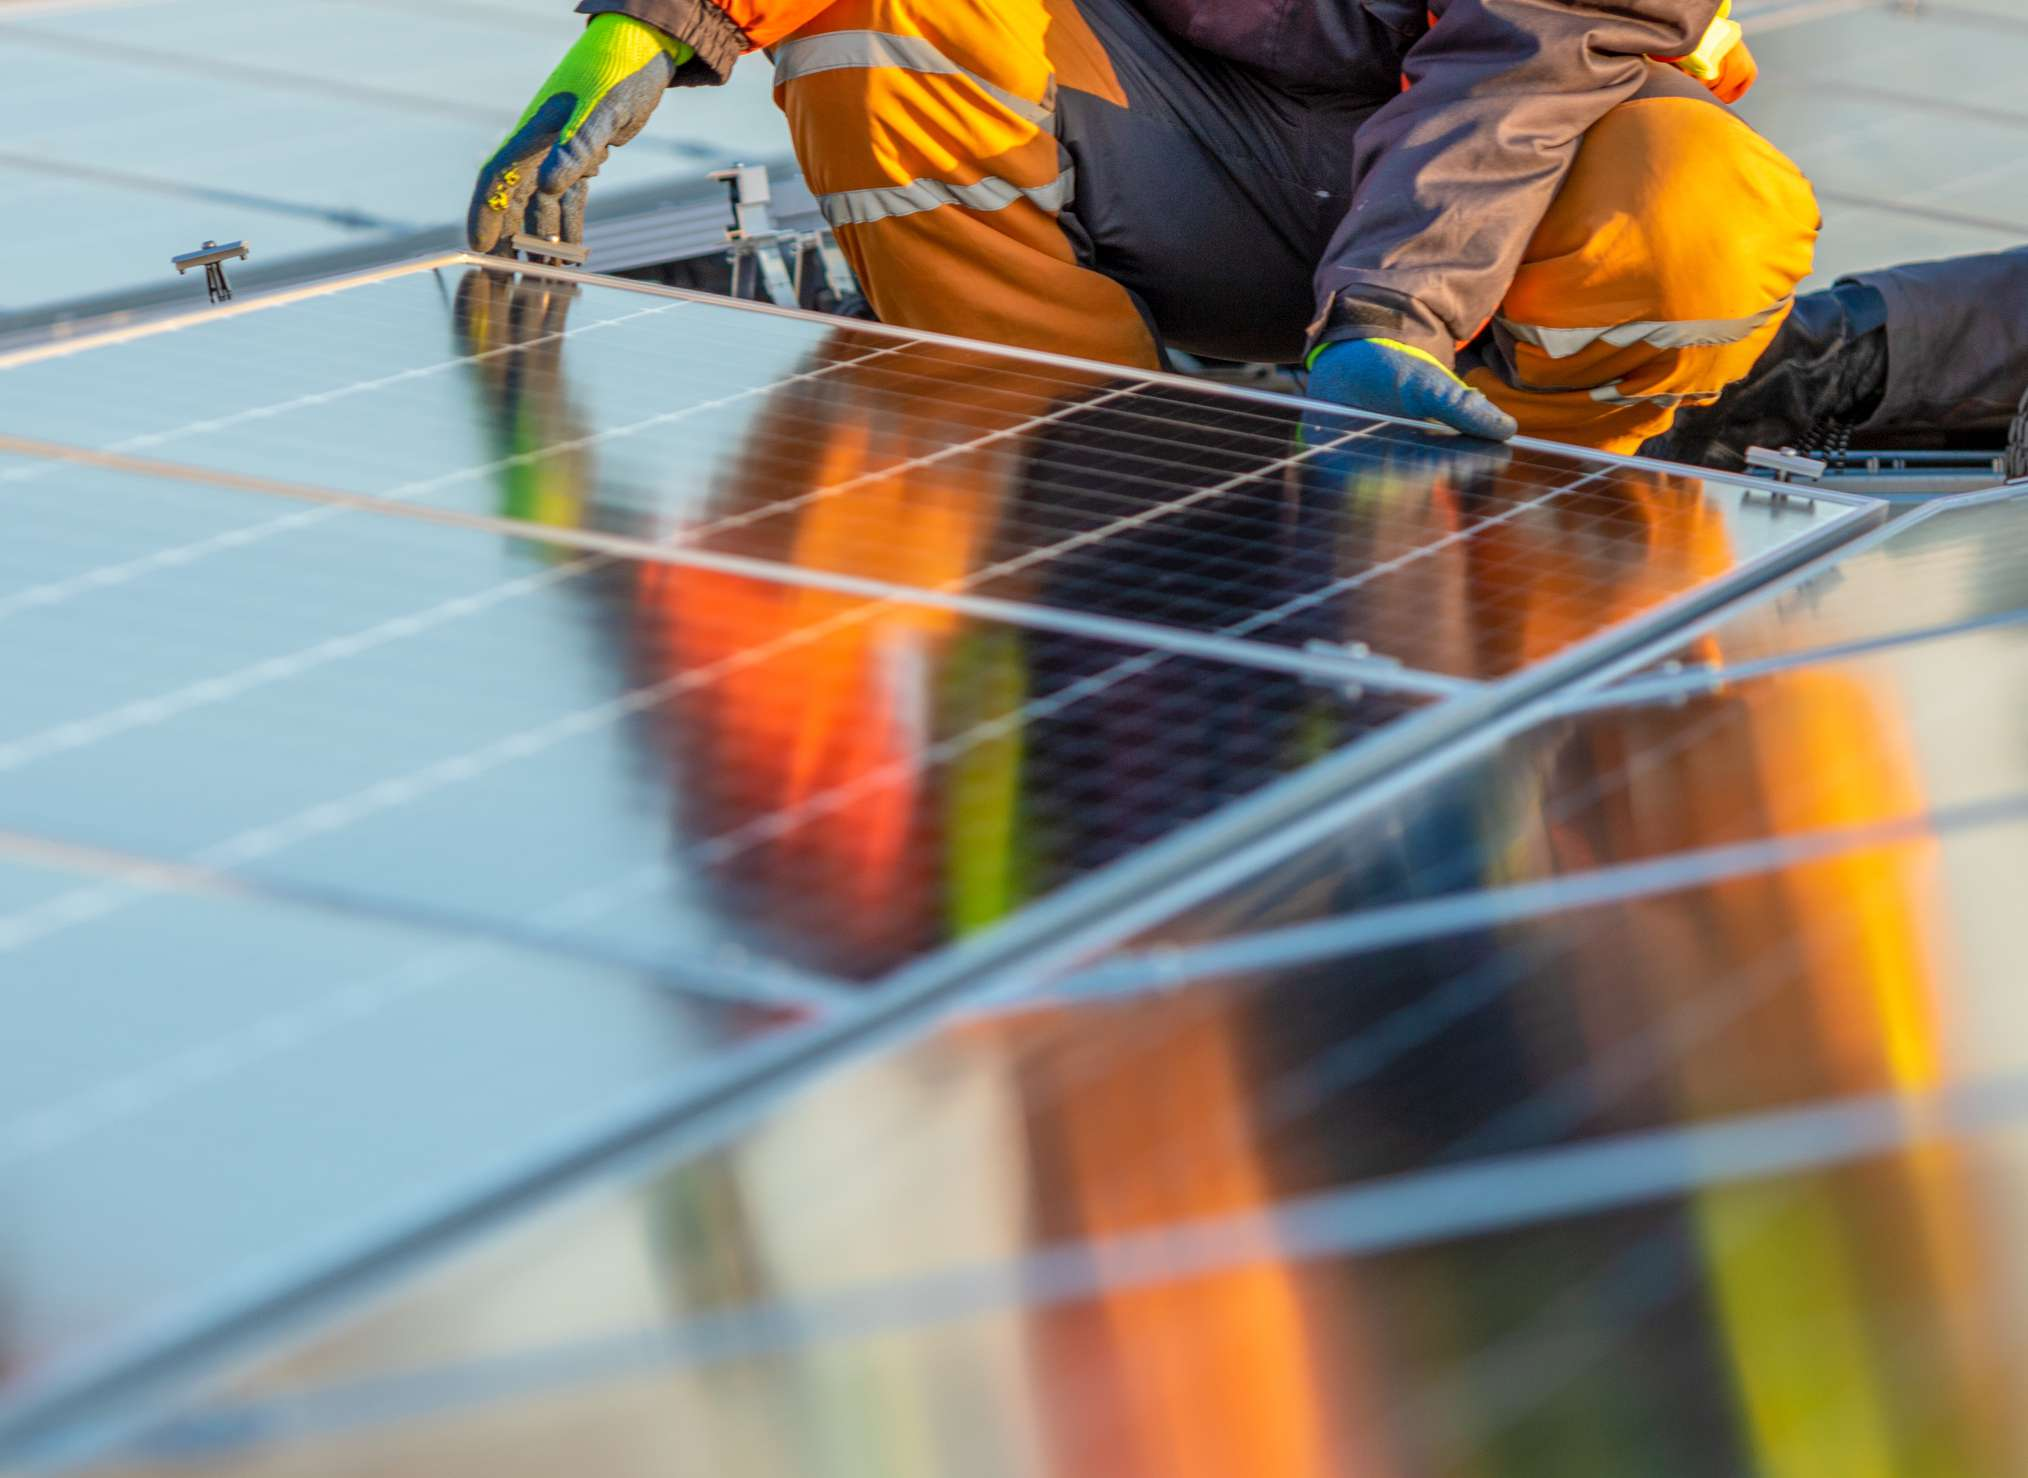 A person installing solar panels on a roof.